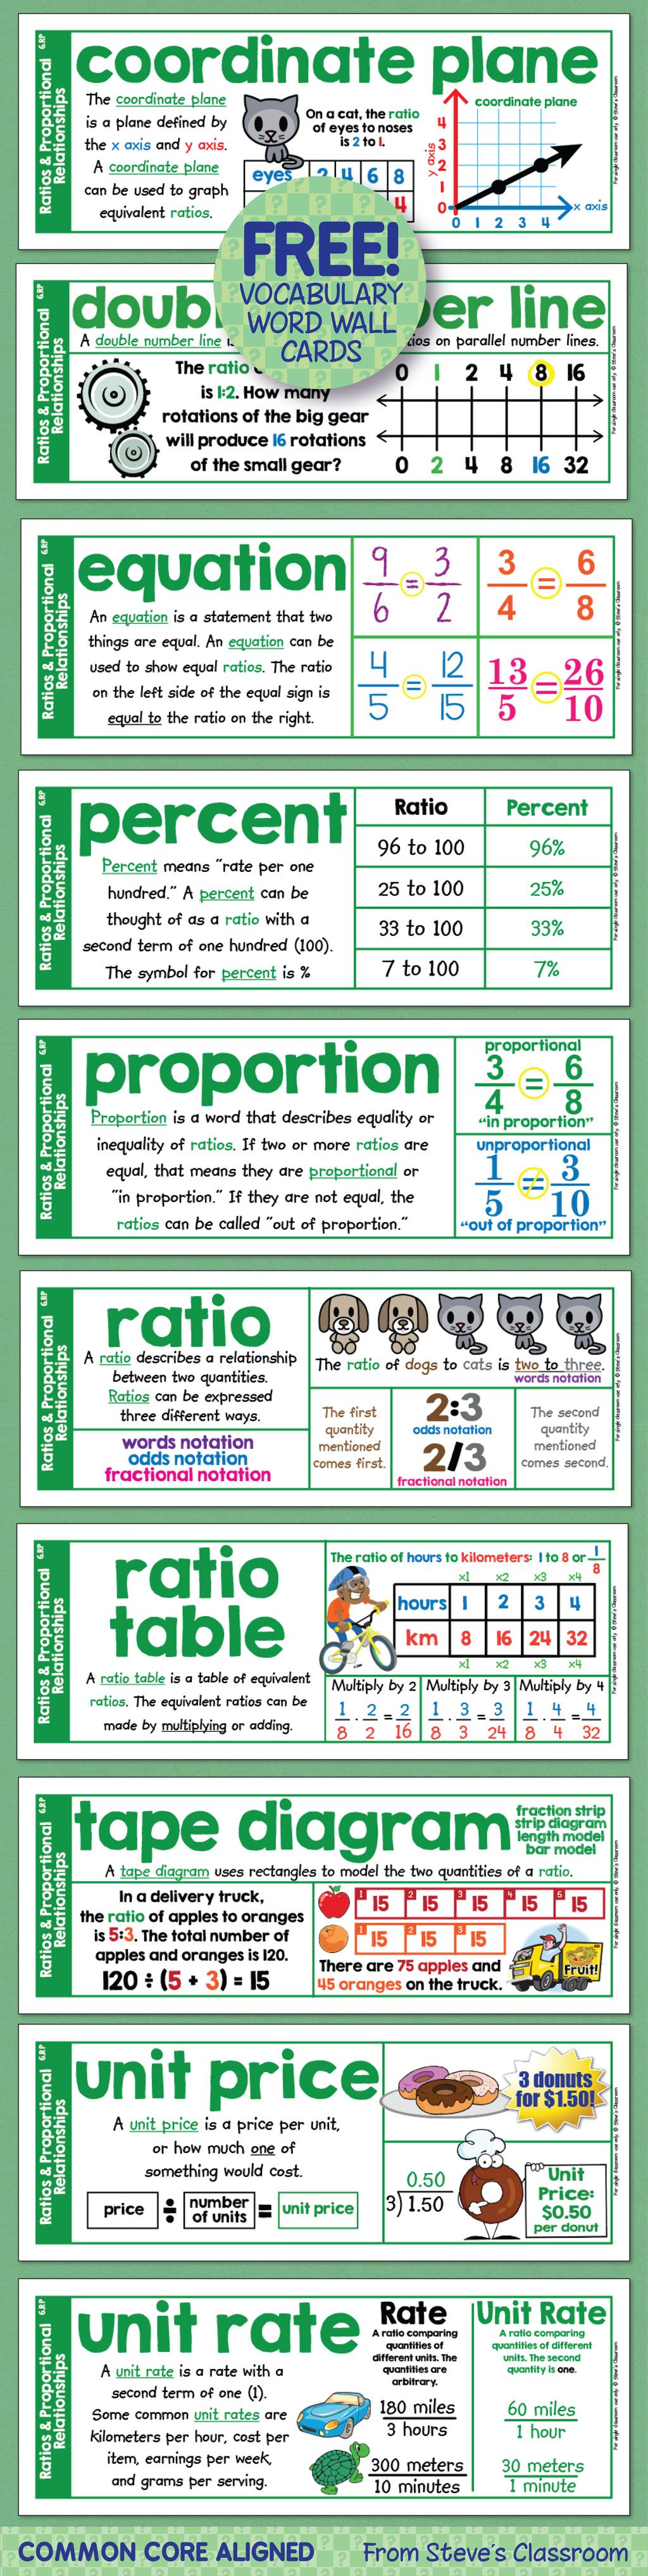 Free Word Wall Cards For Sixth Grade Math Ratios And Proportional Relationships